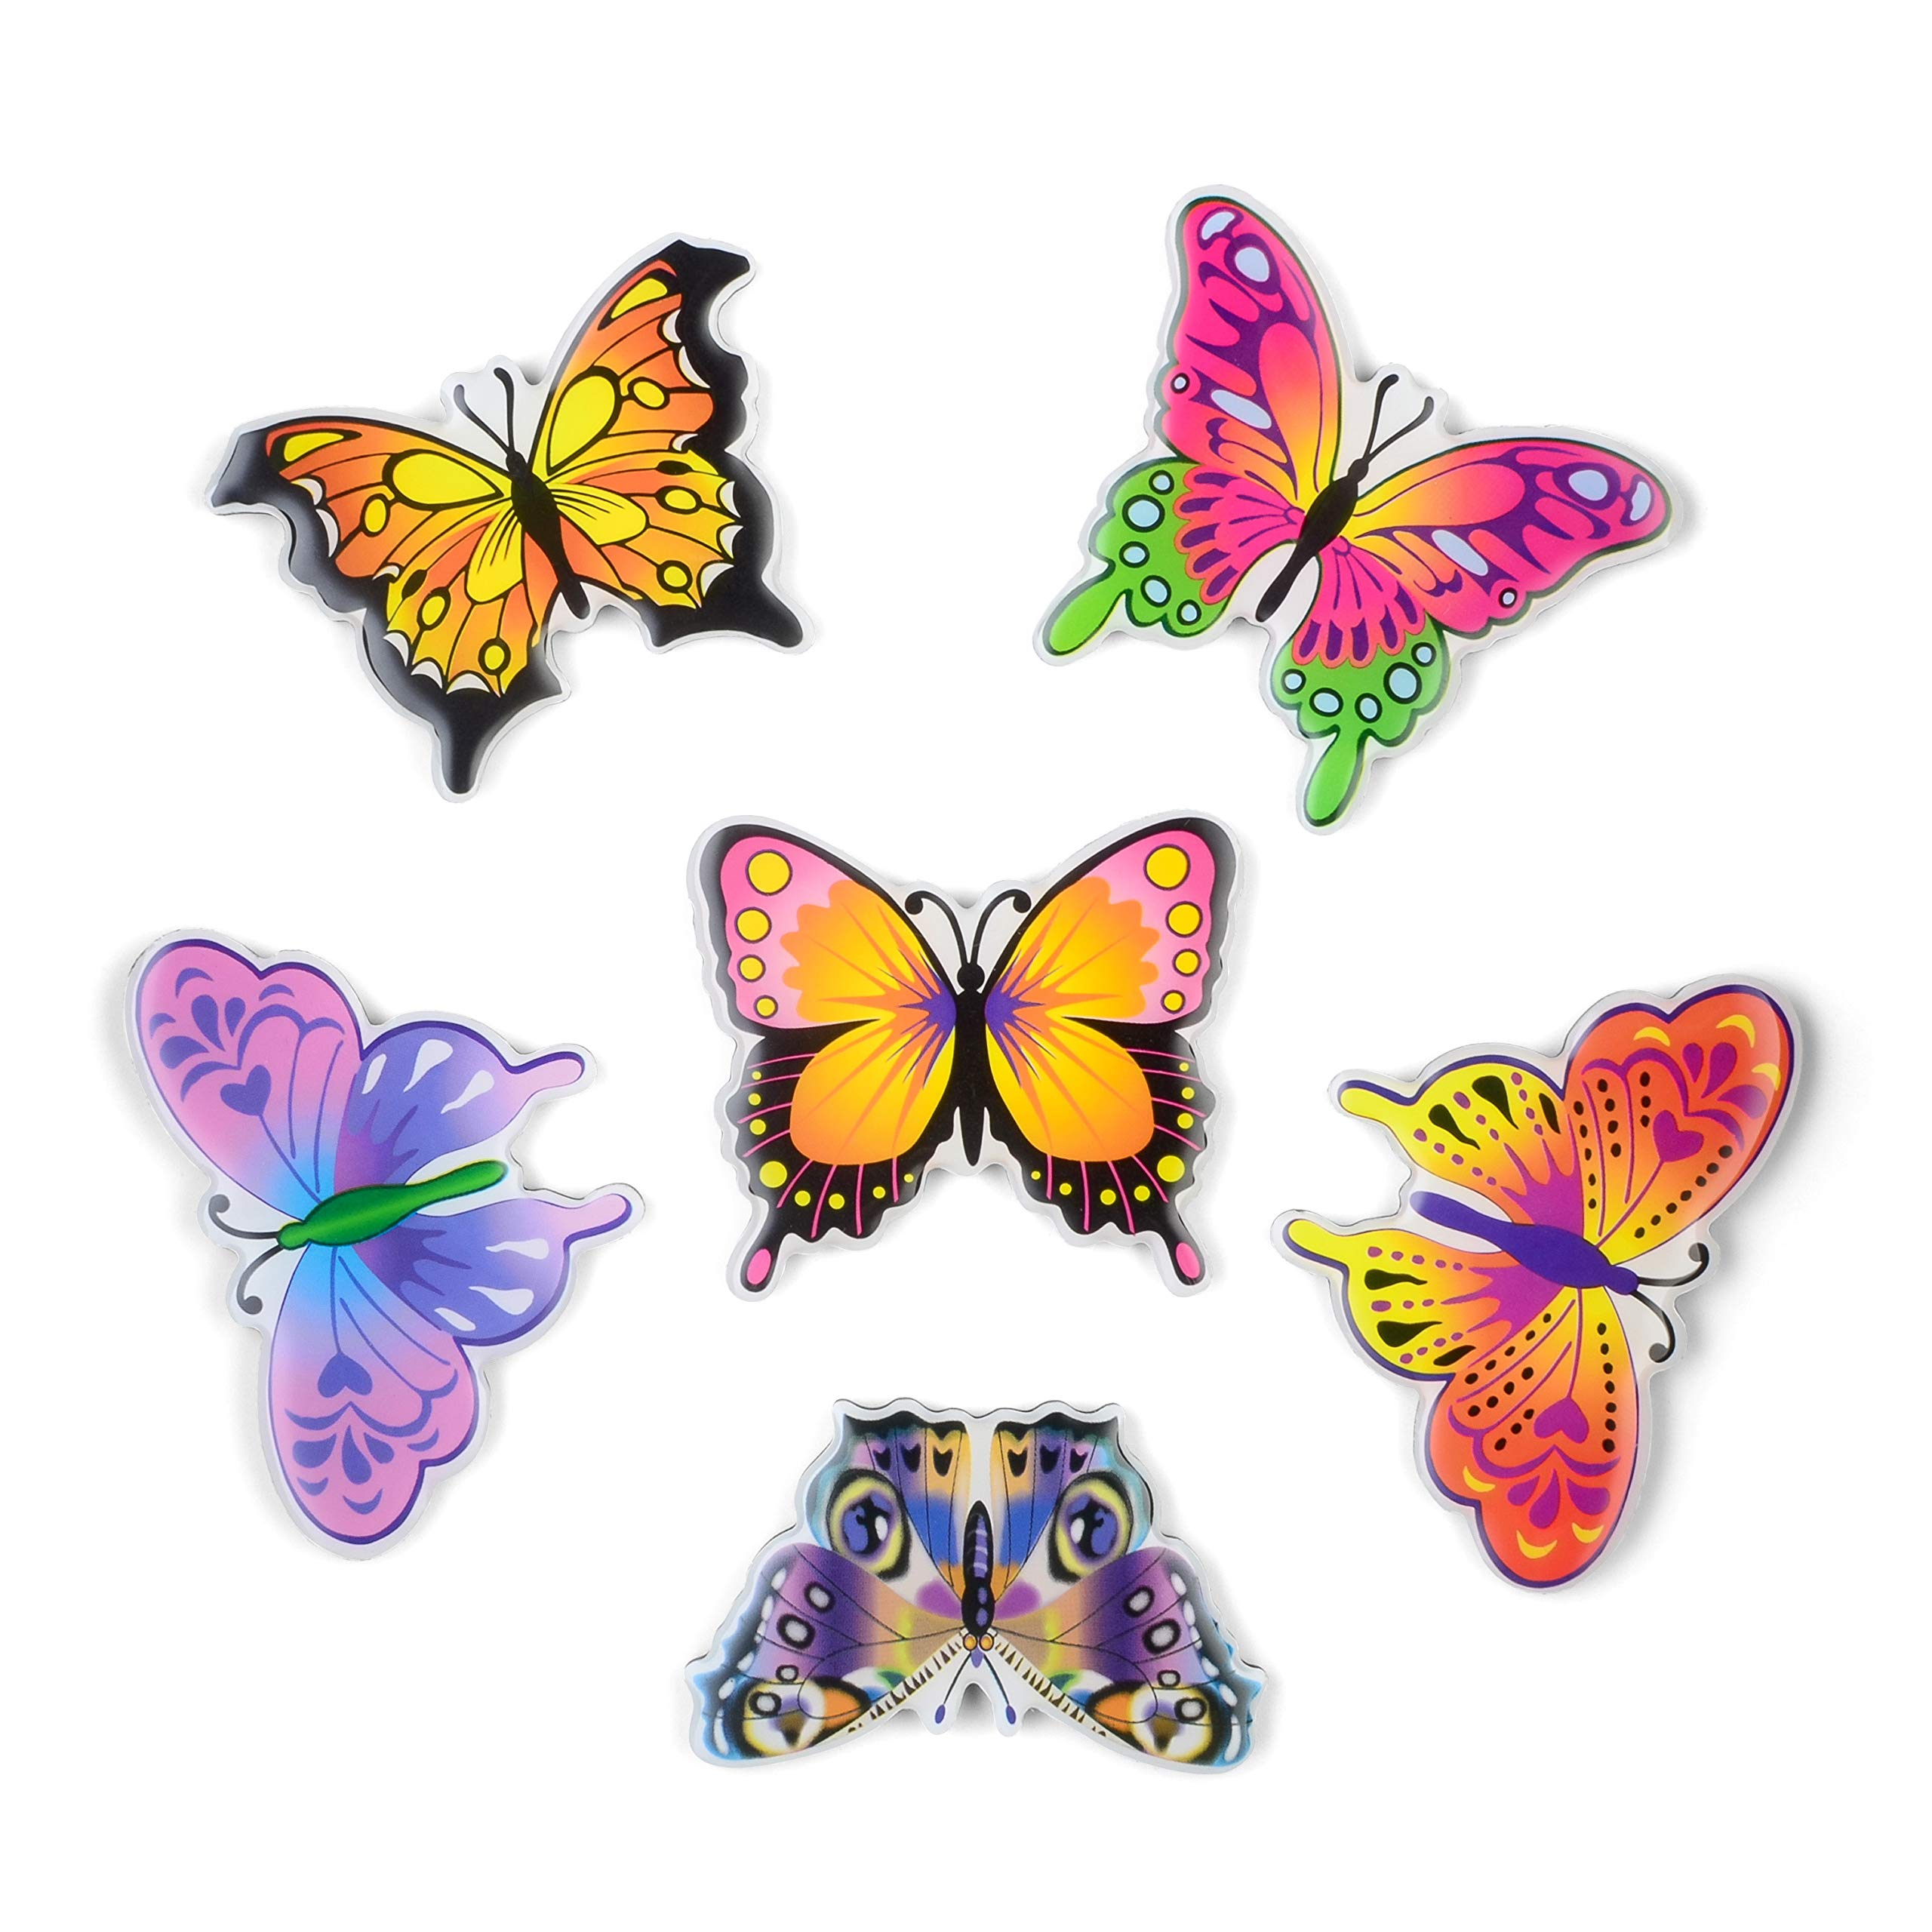 SUPCOOKI 6pcs Beautiful Glass Refrigerator Magnets Decorative Magnet Funny Fridge Stickers Magnet Fun Butterfly Home Decoration Funny for Office Cabinets Whiteboards Photo Abstract